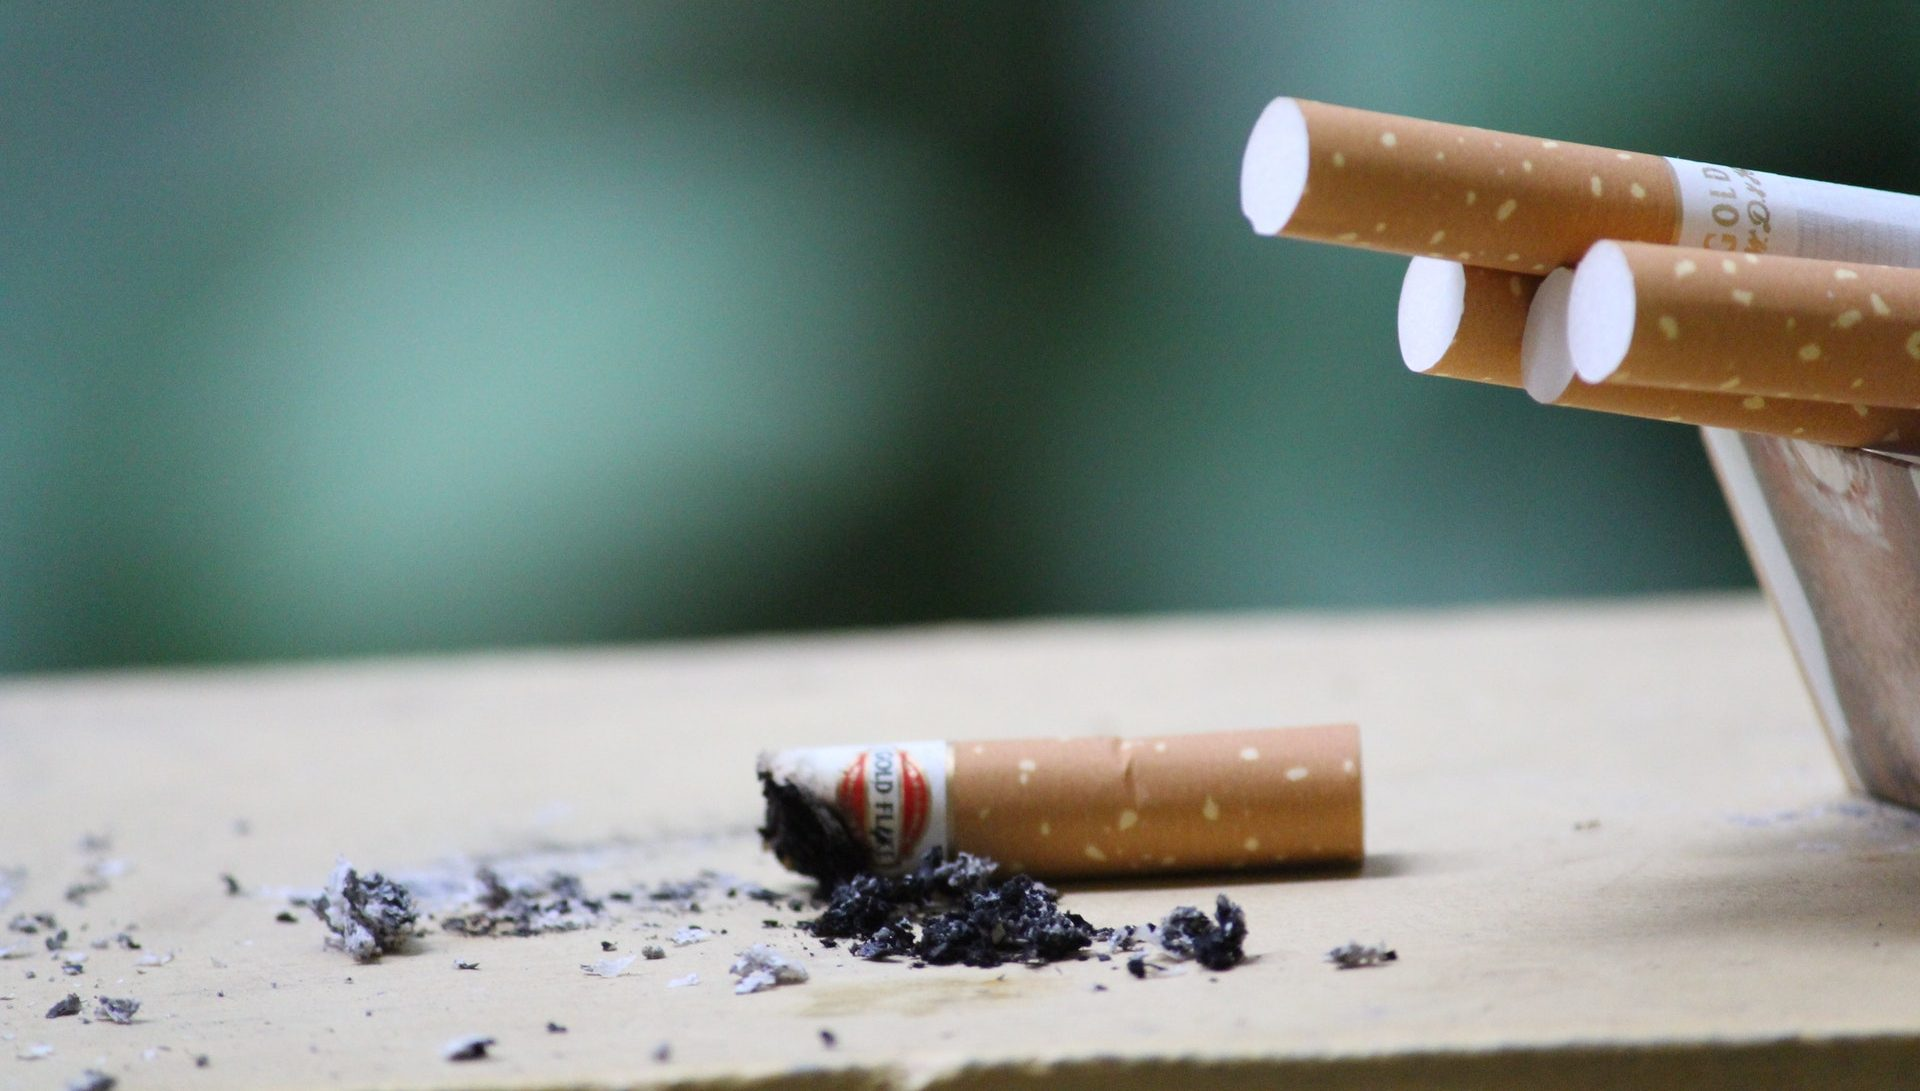 Cannabis can help reduce tobacco and nicotine intake, study shows